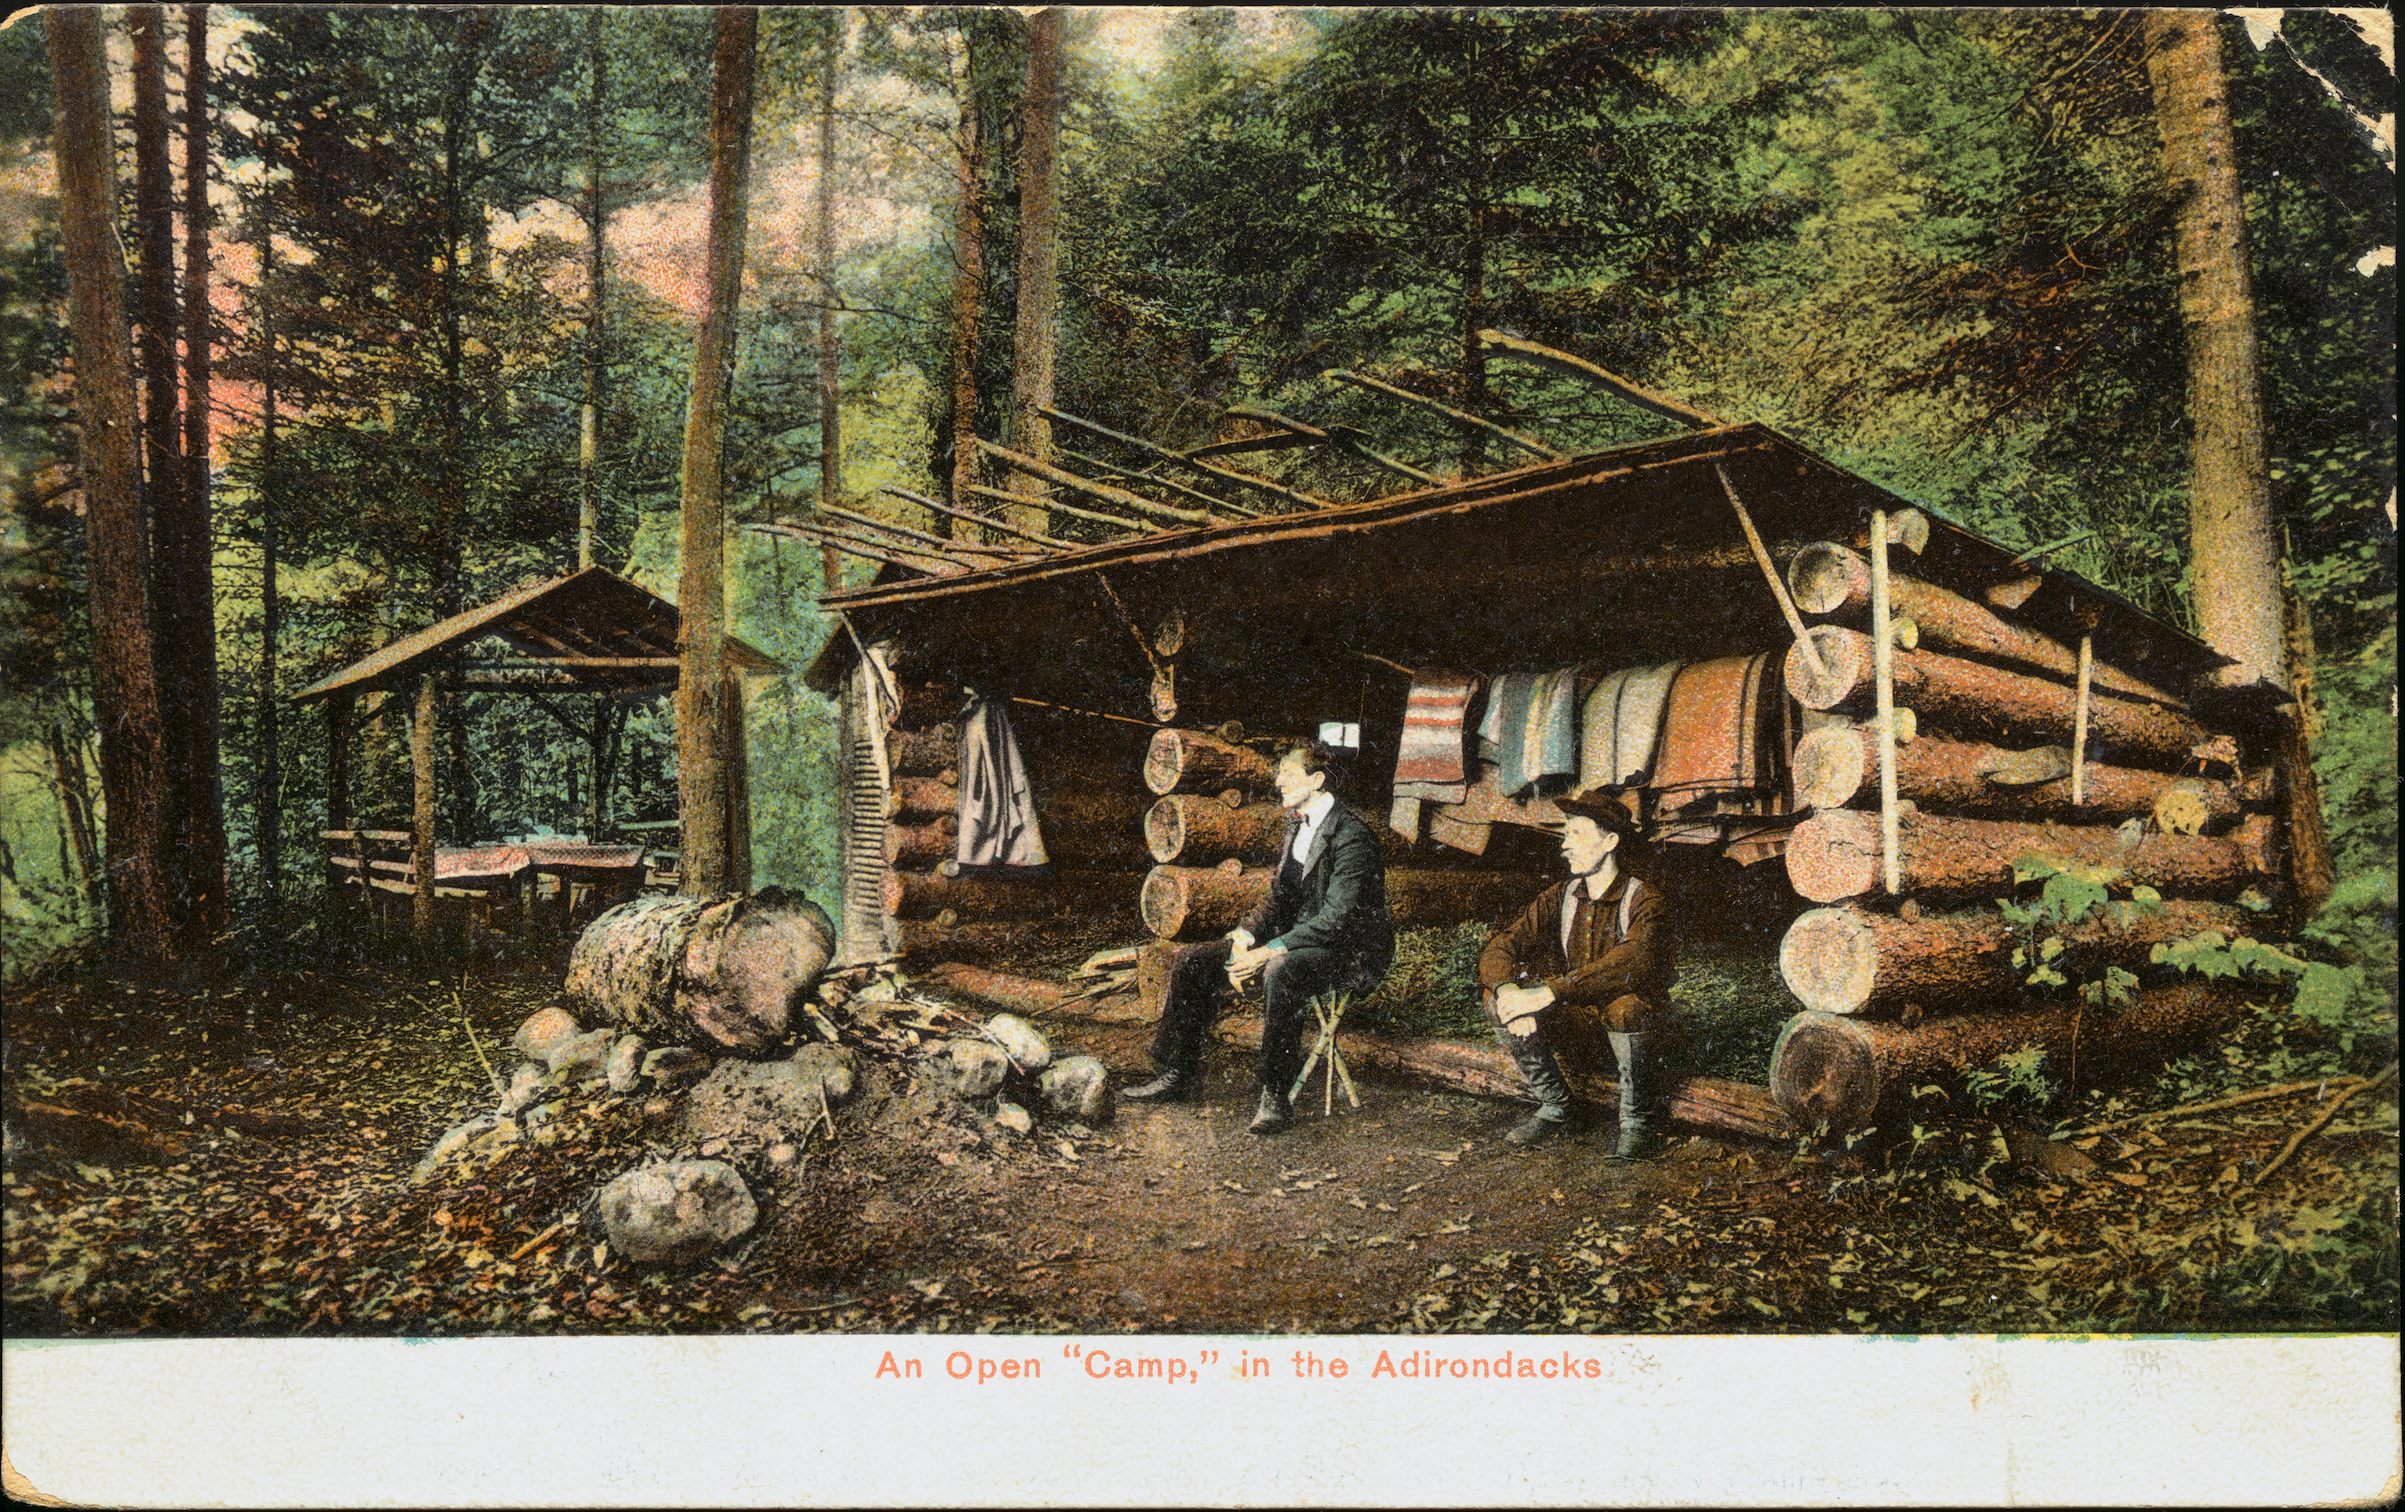 A turn-of-the-century postcard shows an  open 'camp' in the Adirondacks